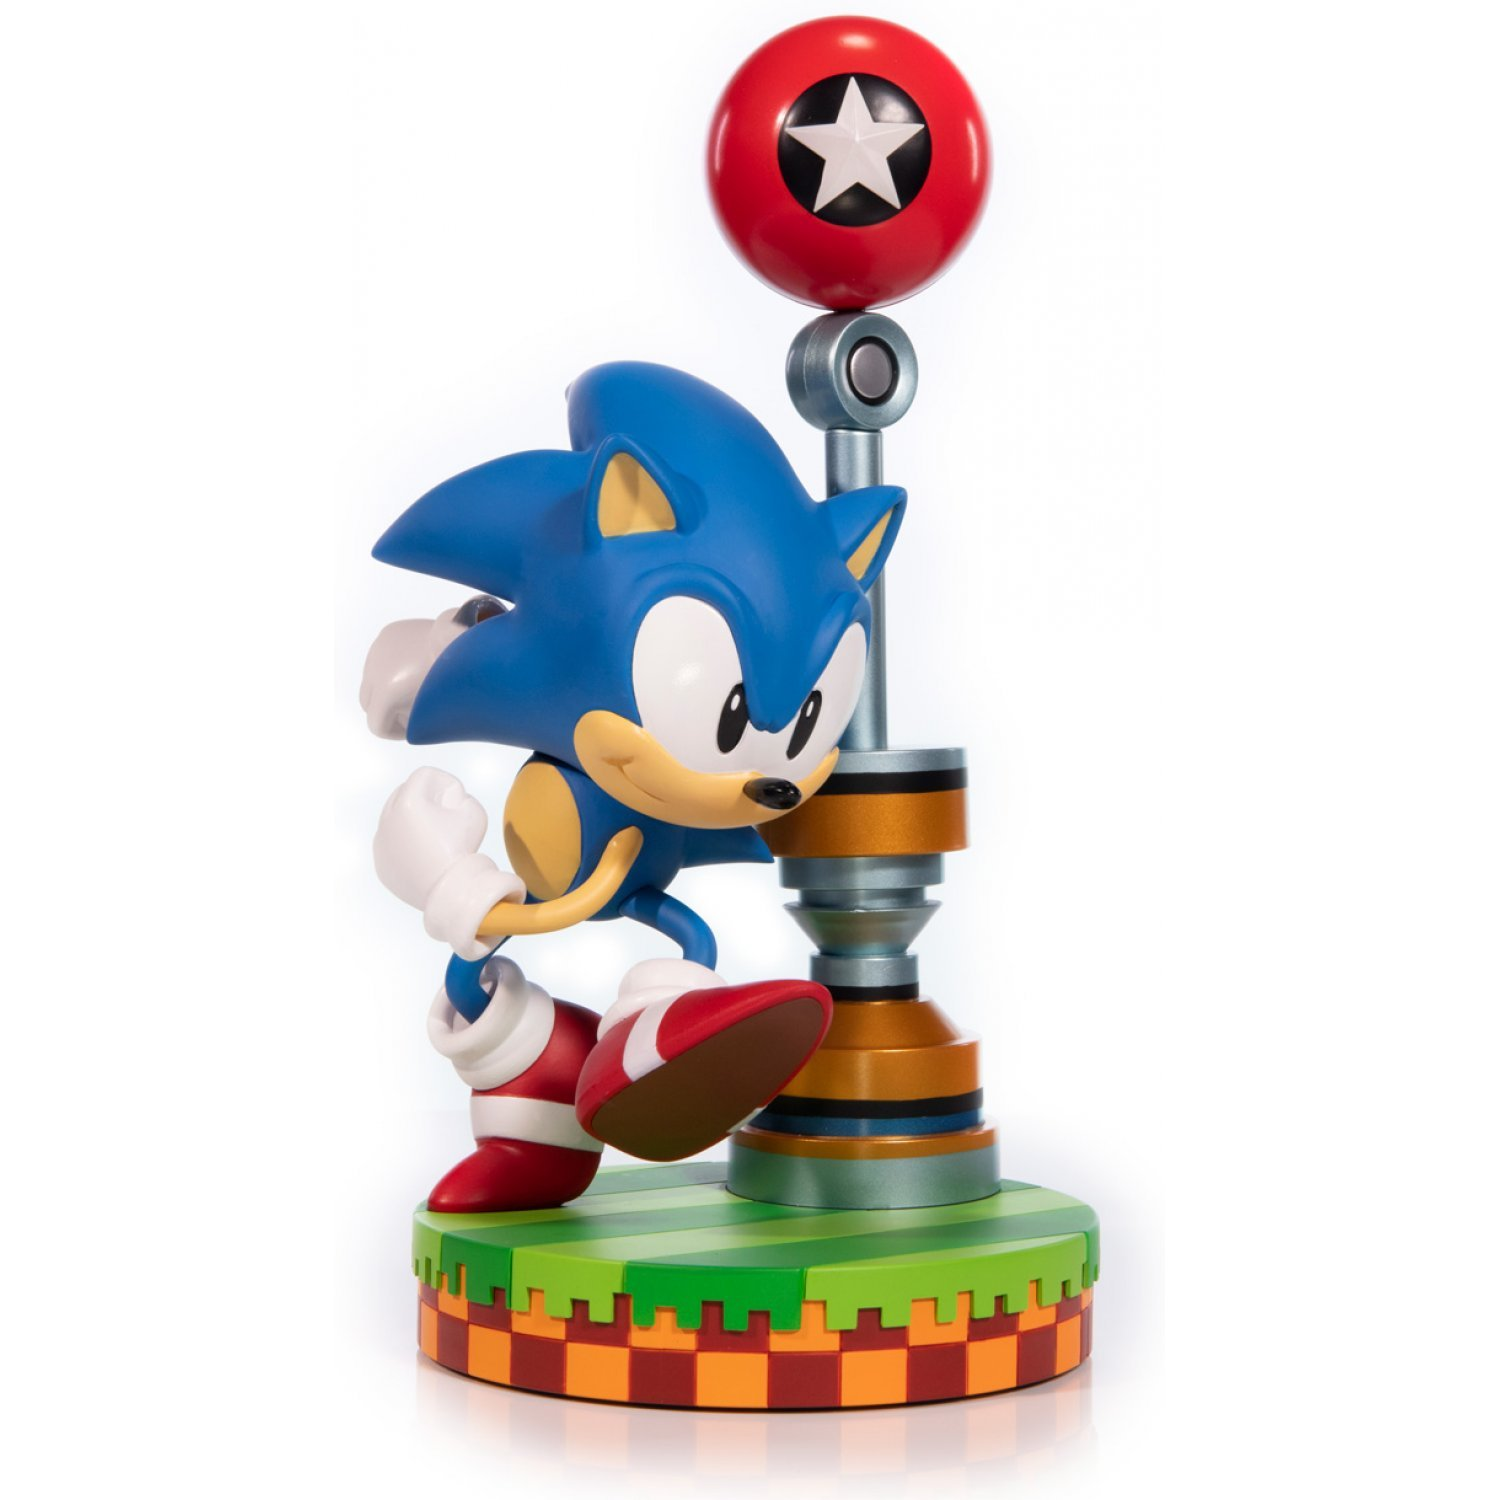 F4F sonic the hedgehog Sonic-the-hedgehog-pvc-painted-statue-sonic-standard-edition-616509.2